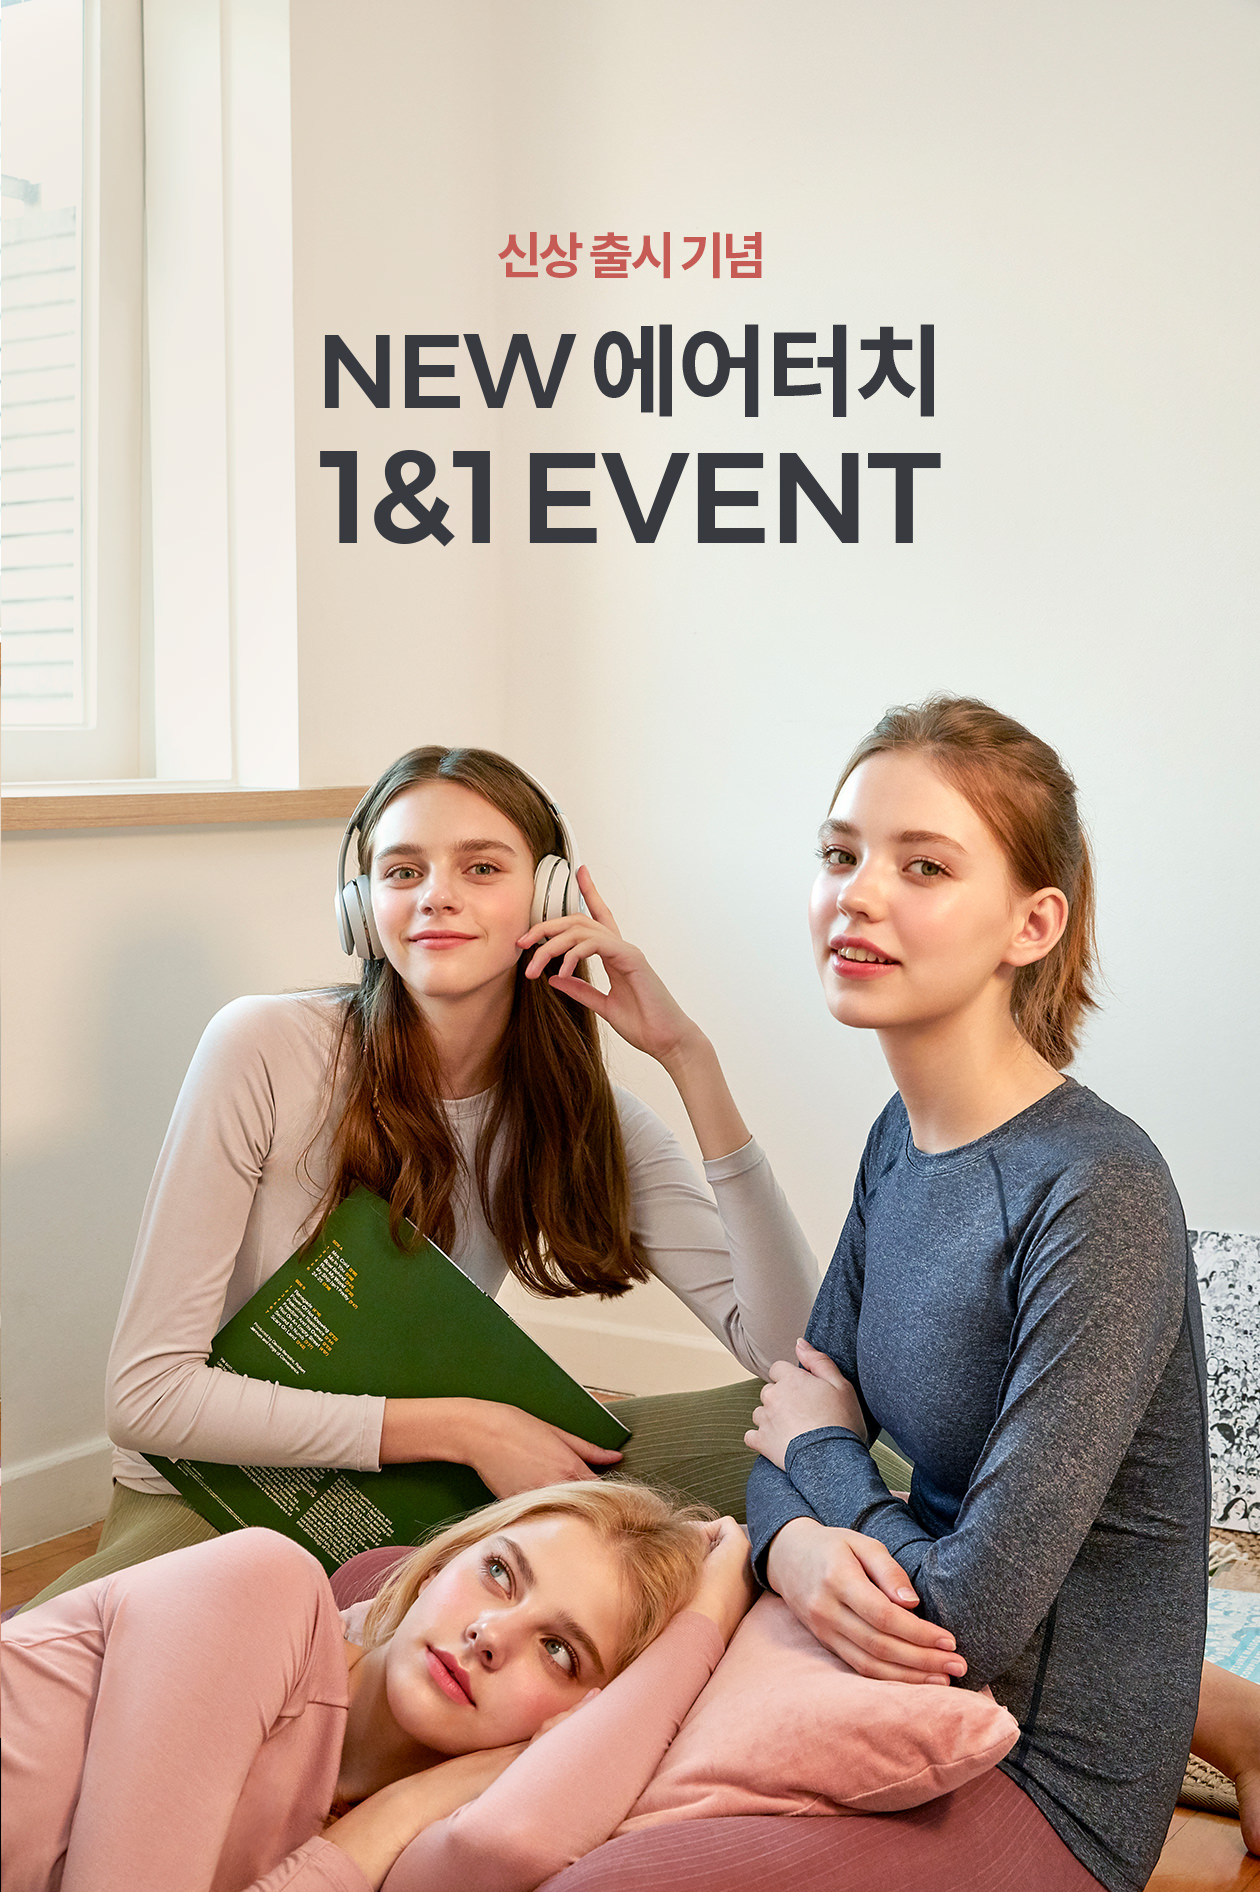 NEW 안다르 에어터치1&1 EVENT